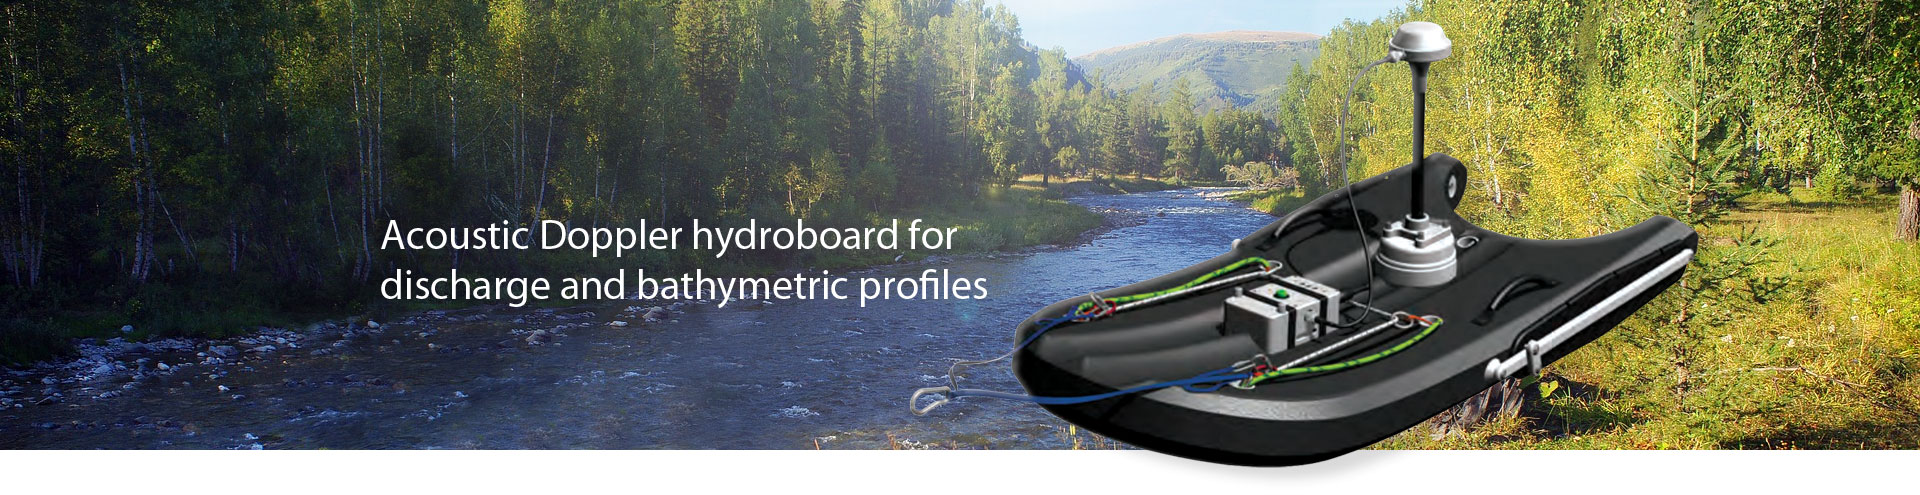 Acoustic Doppler hydroboard for discharge and bathymetric profiles